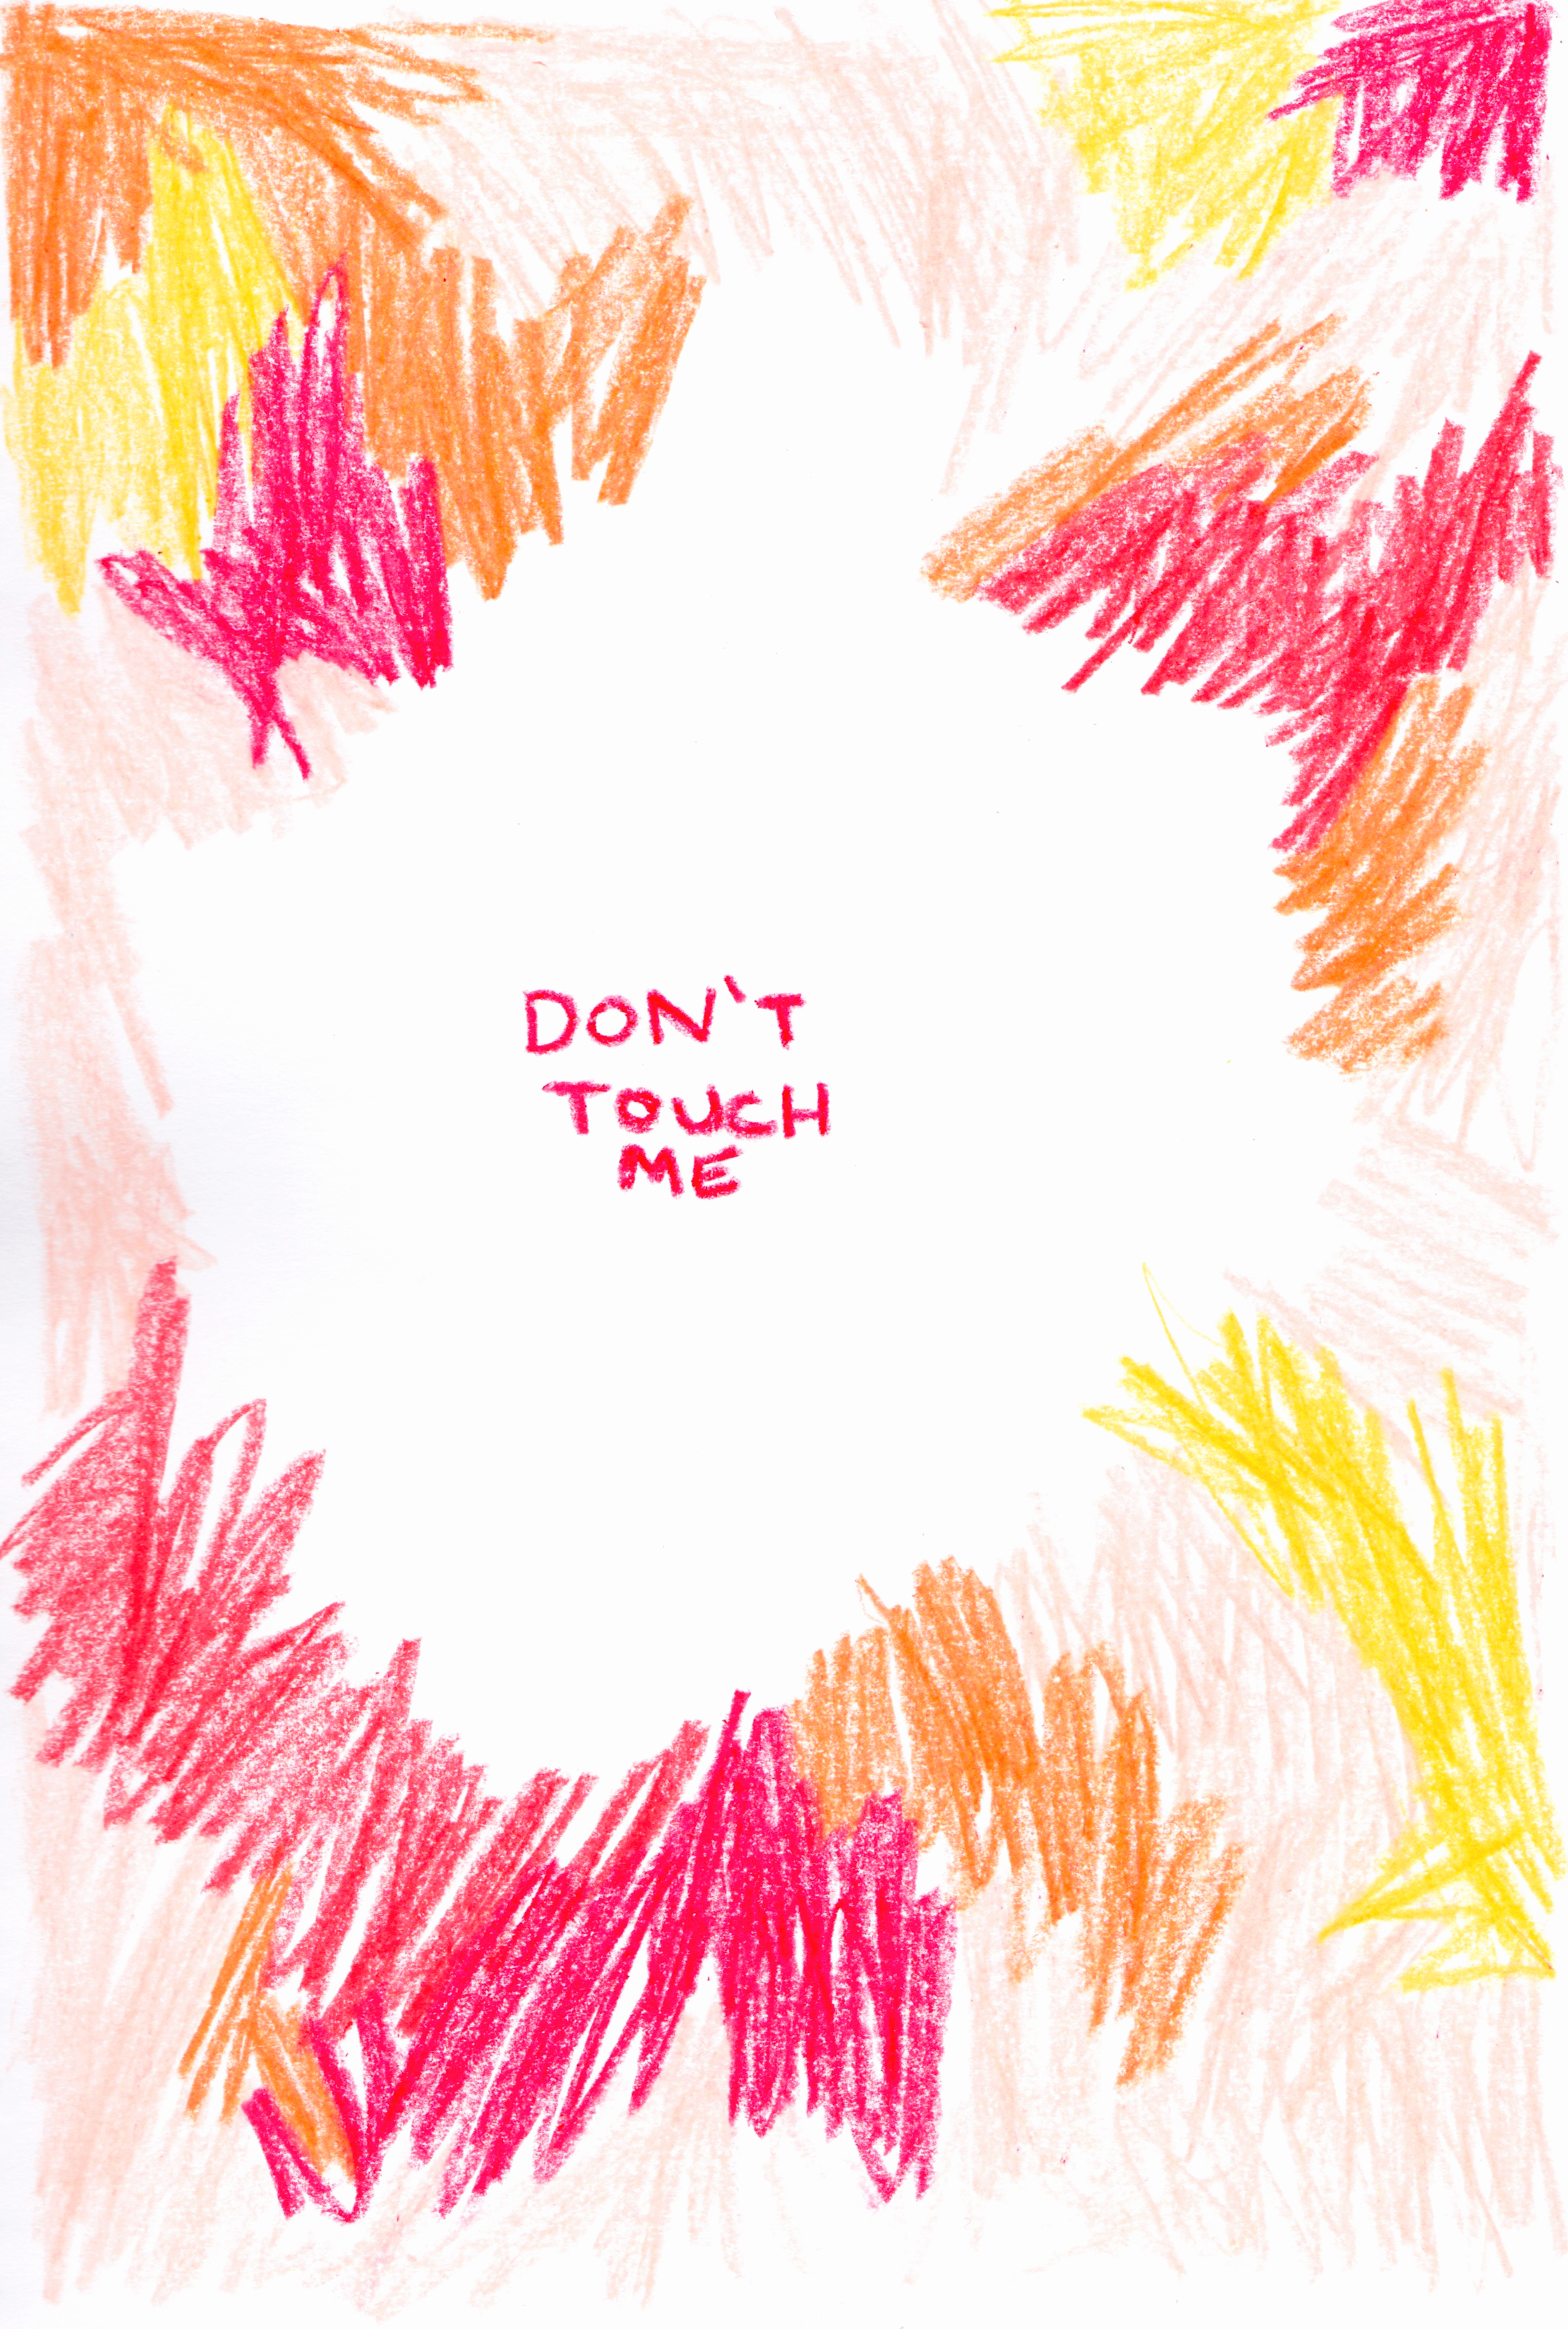 Don't Touch Me . Crayon drawing on paper.